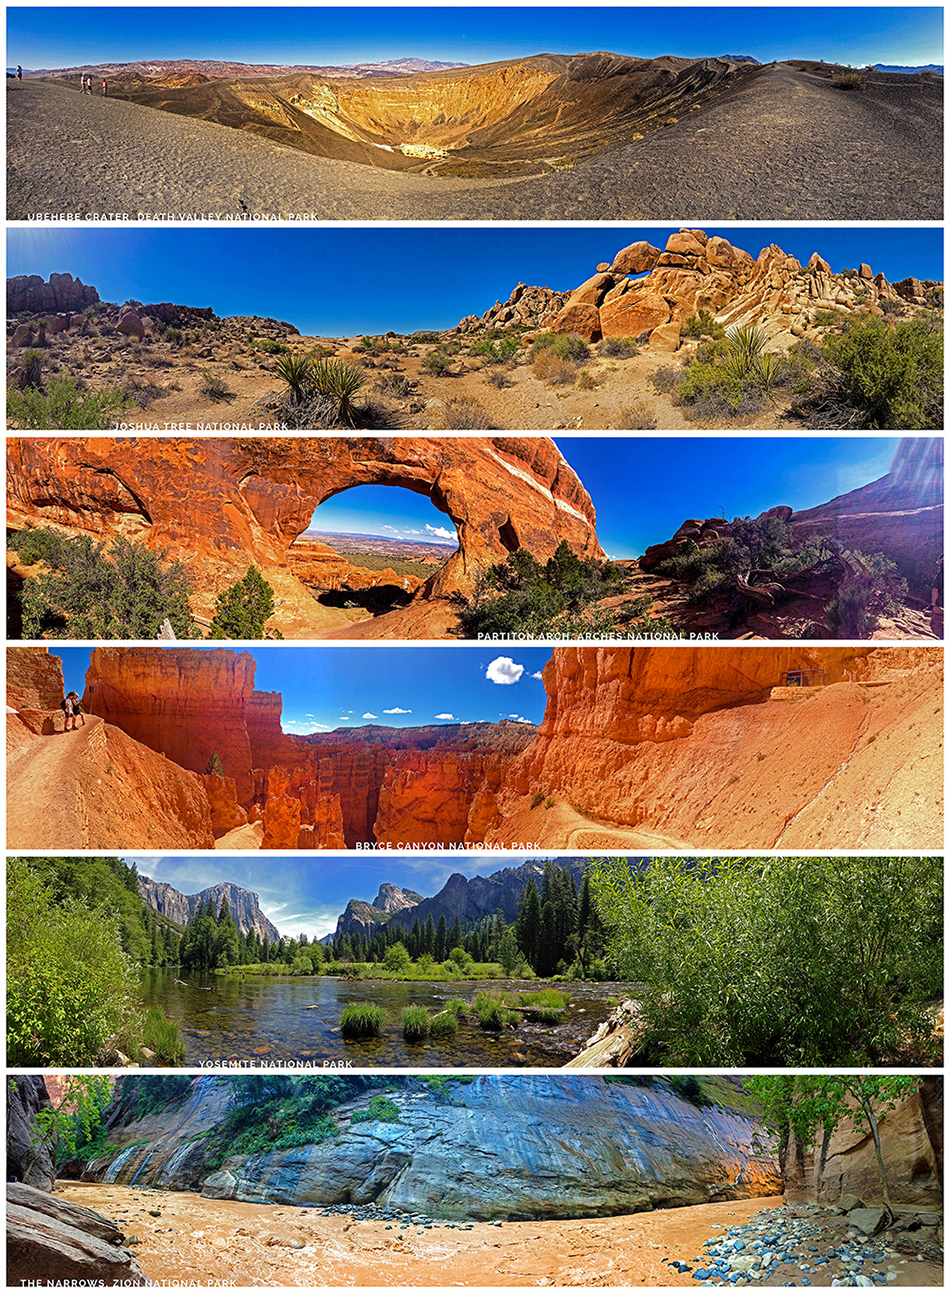 American Southwest 2014 Panorama Poster_03